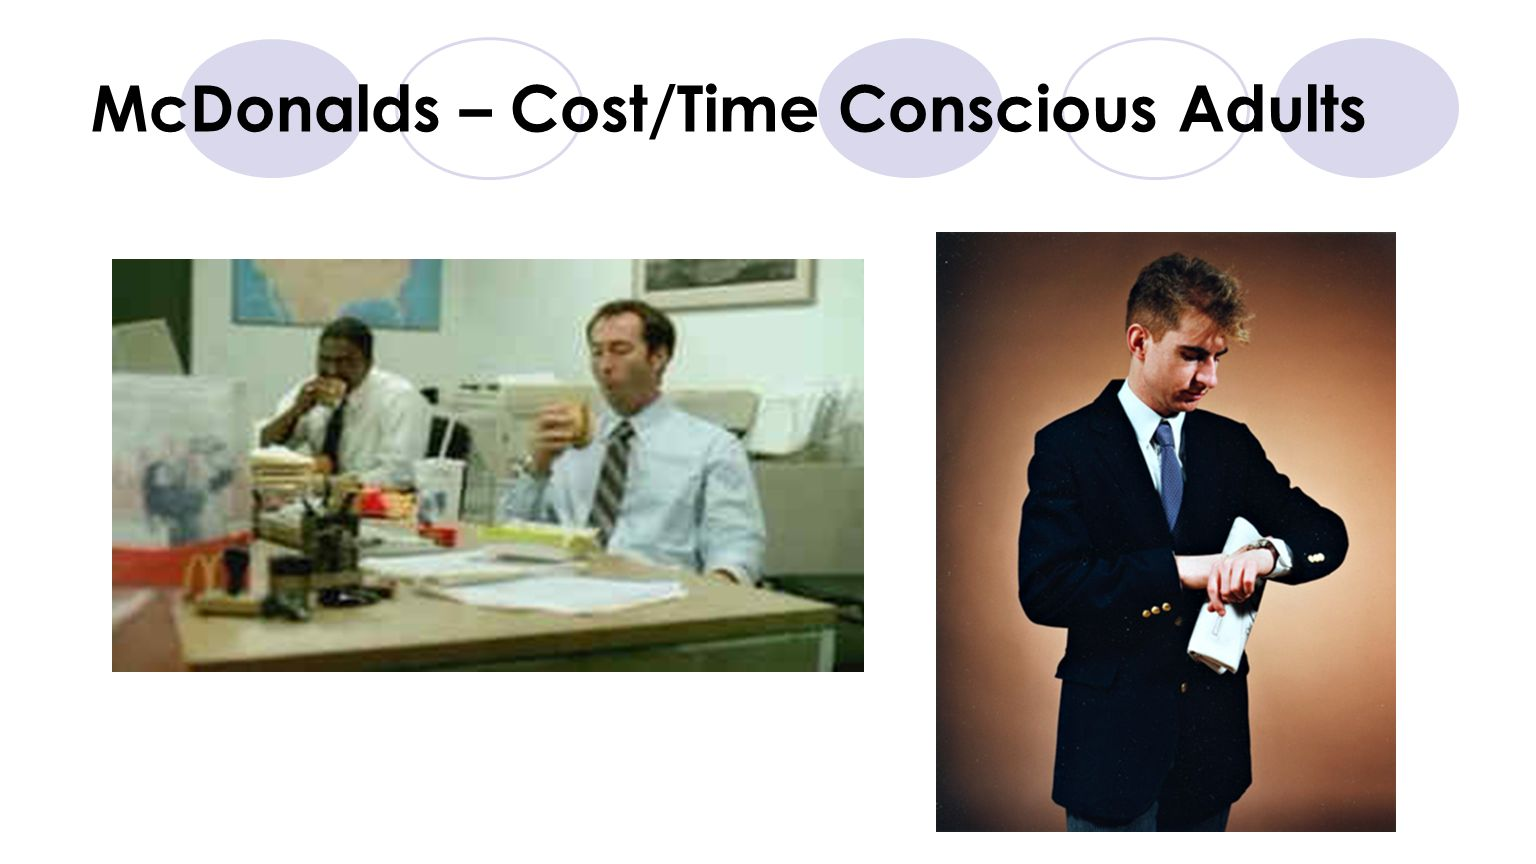 McDonalds – Cost/Time Conscious Adults